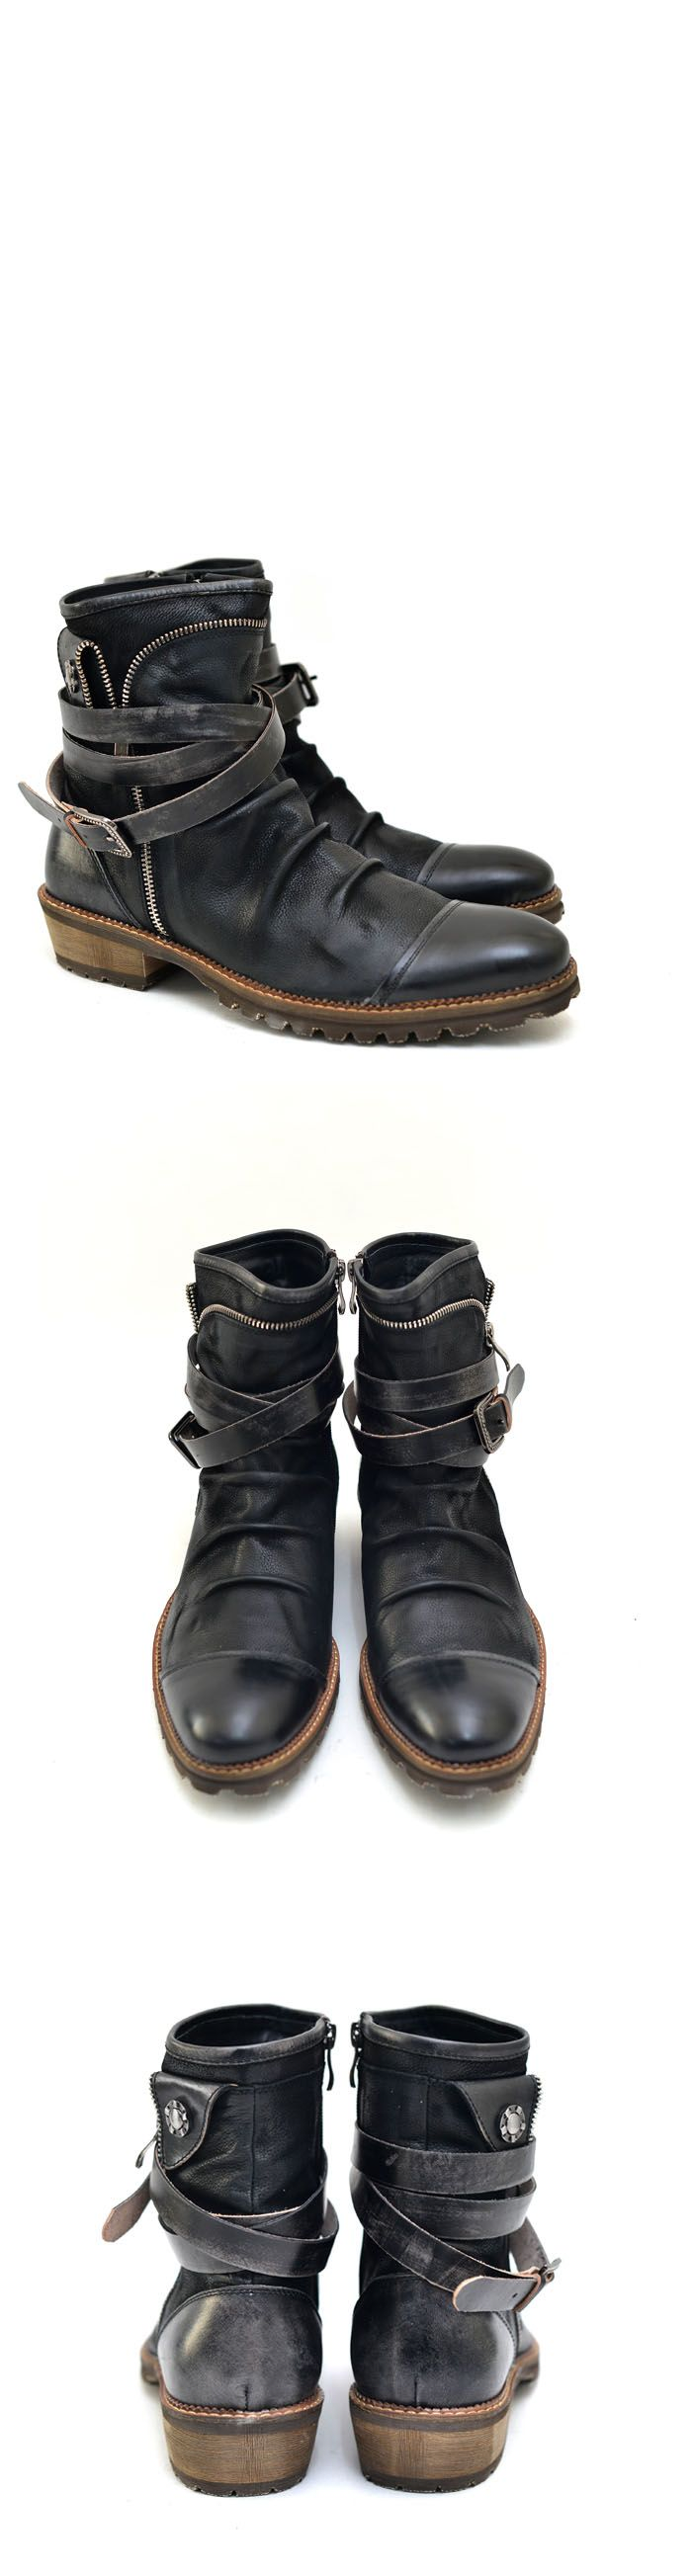 Shoes :: Vintage Belted Wrinkle Biker Boots-Shoes 382 - Mens Fashion Clothing For An Attractive Guy Look